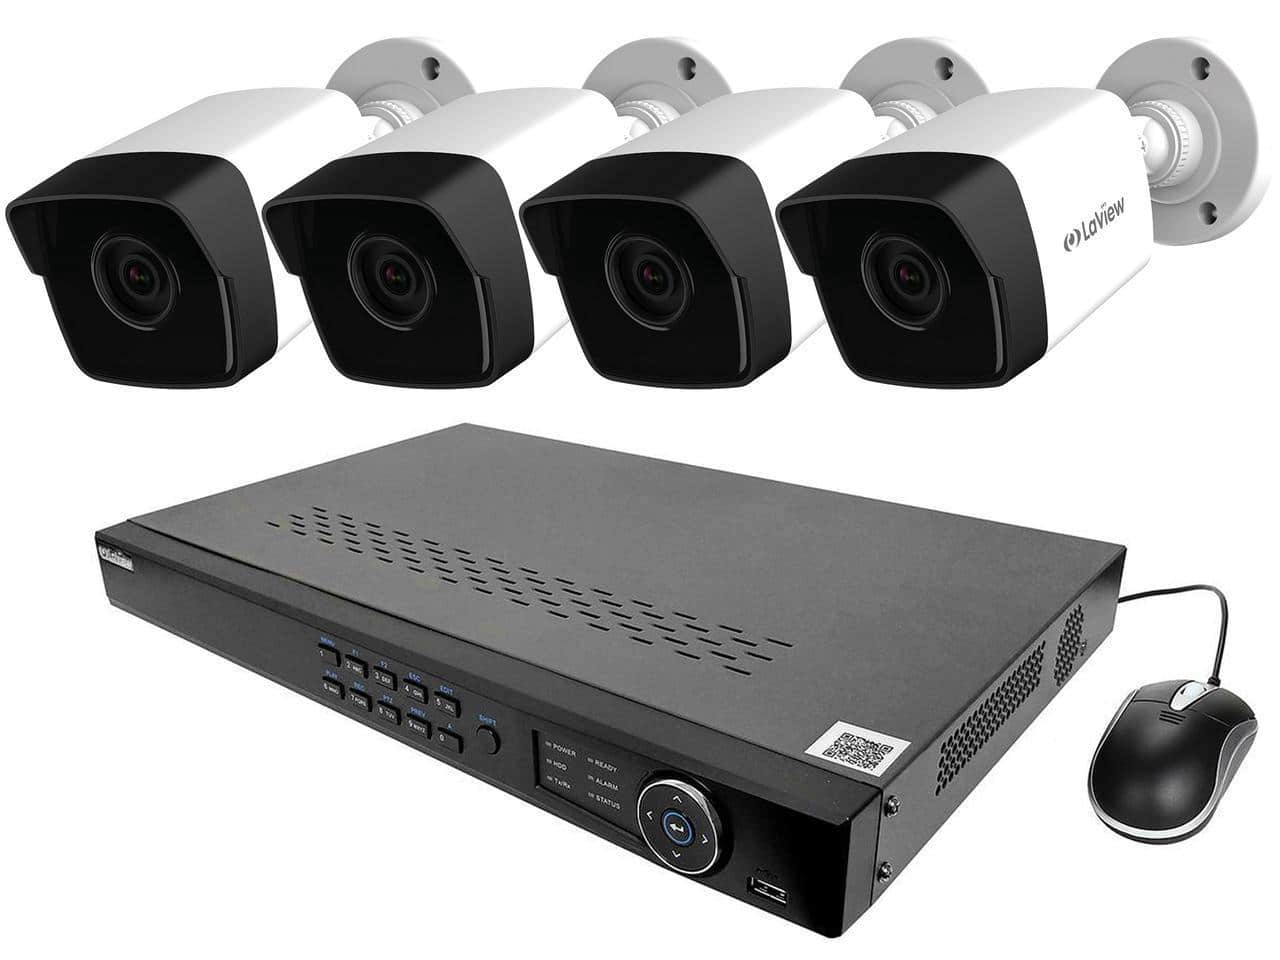 Laview Nvr Poe 8 Channel Security System W 4x Cameras